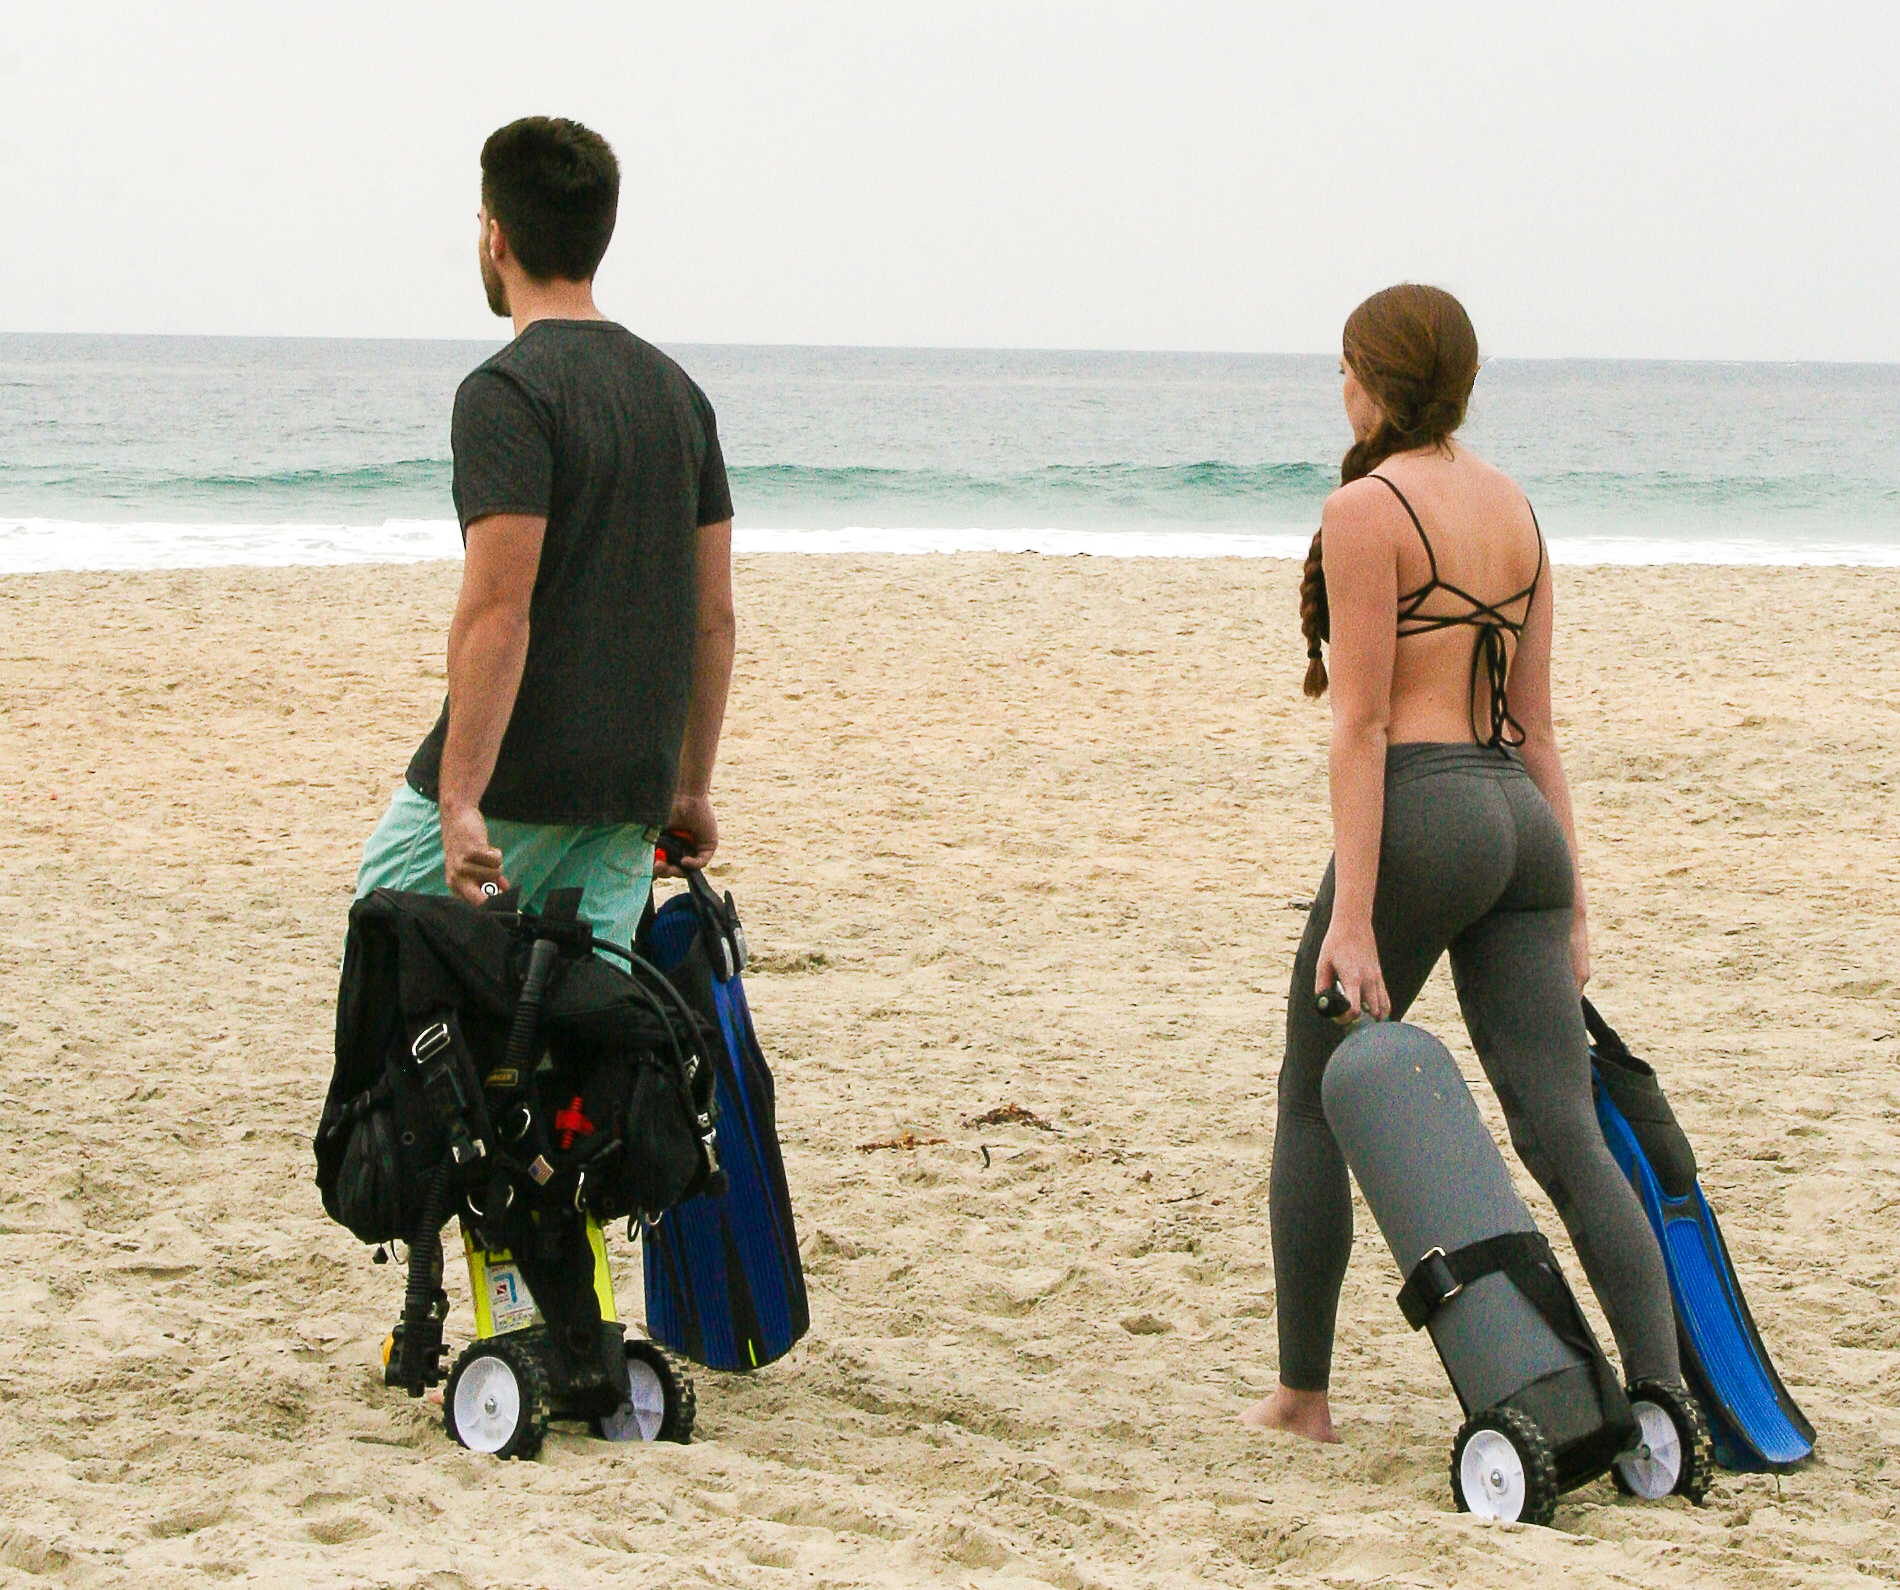 The Tank Trolley can be used in the sand with or without scuba gear attached. There is no other need to use more tank carts or a tank dolly